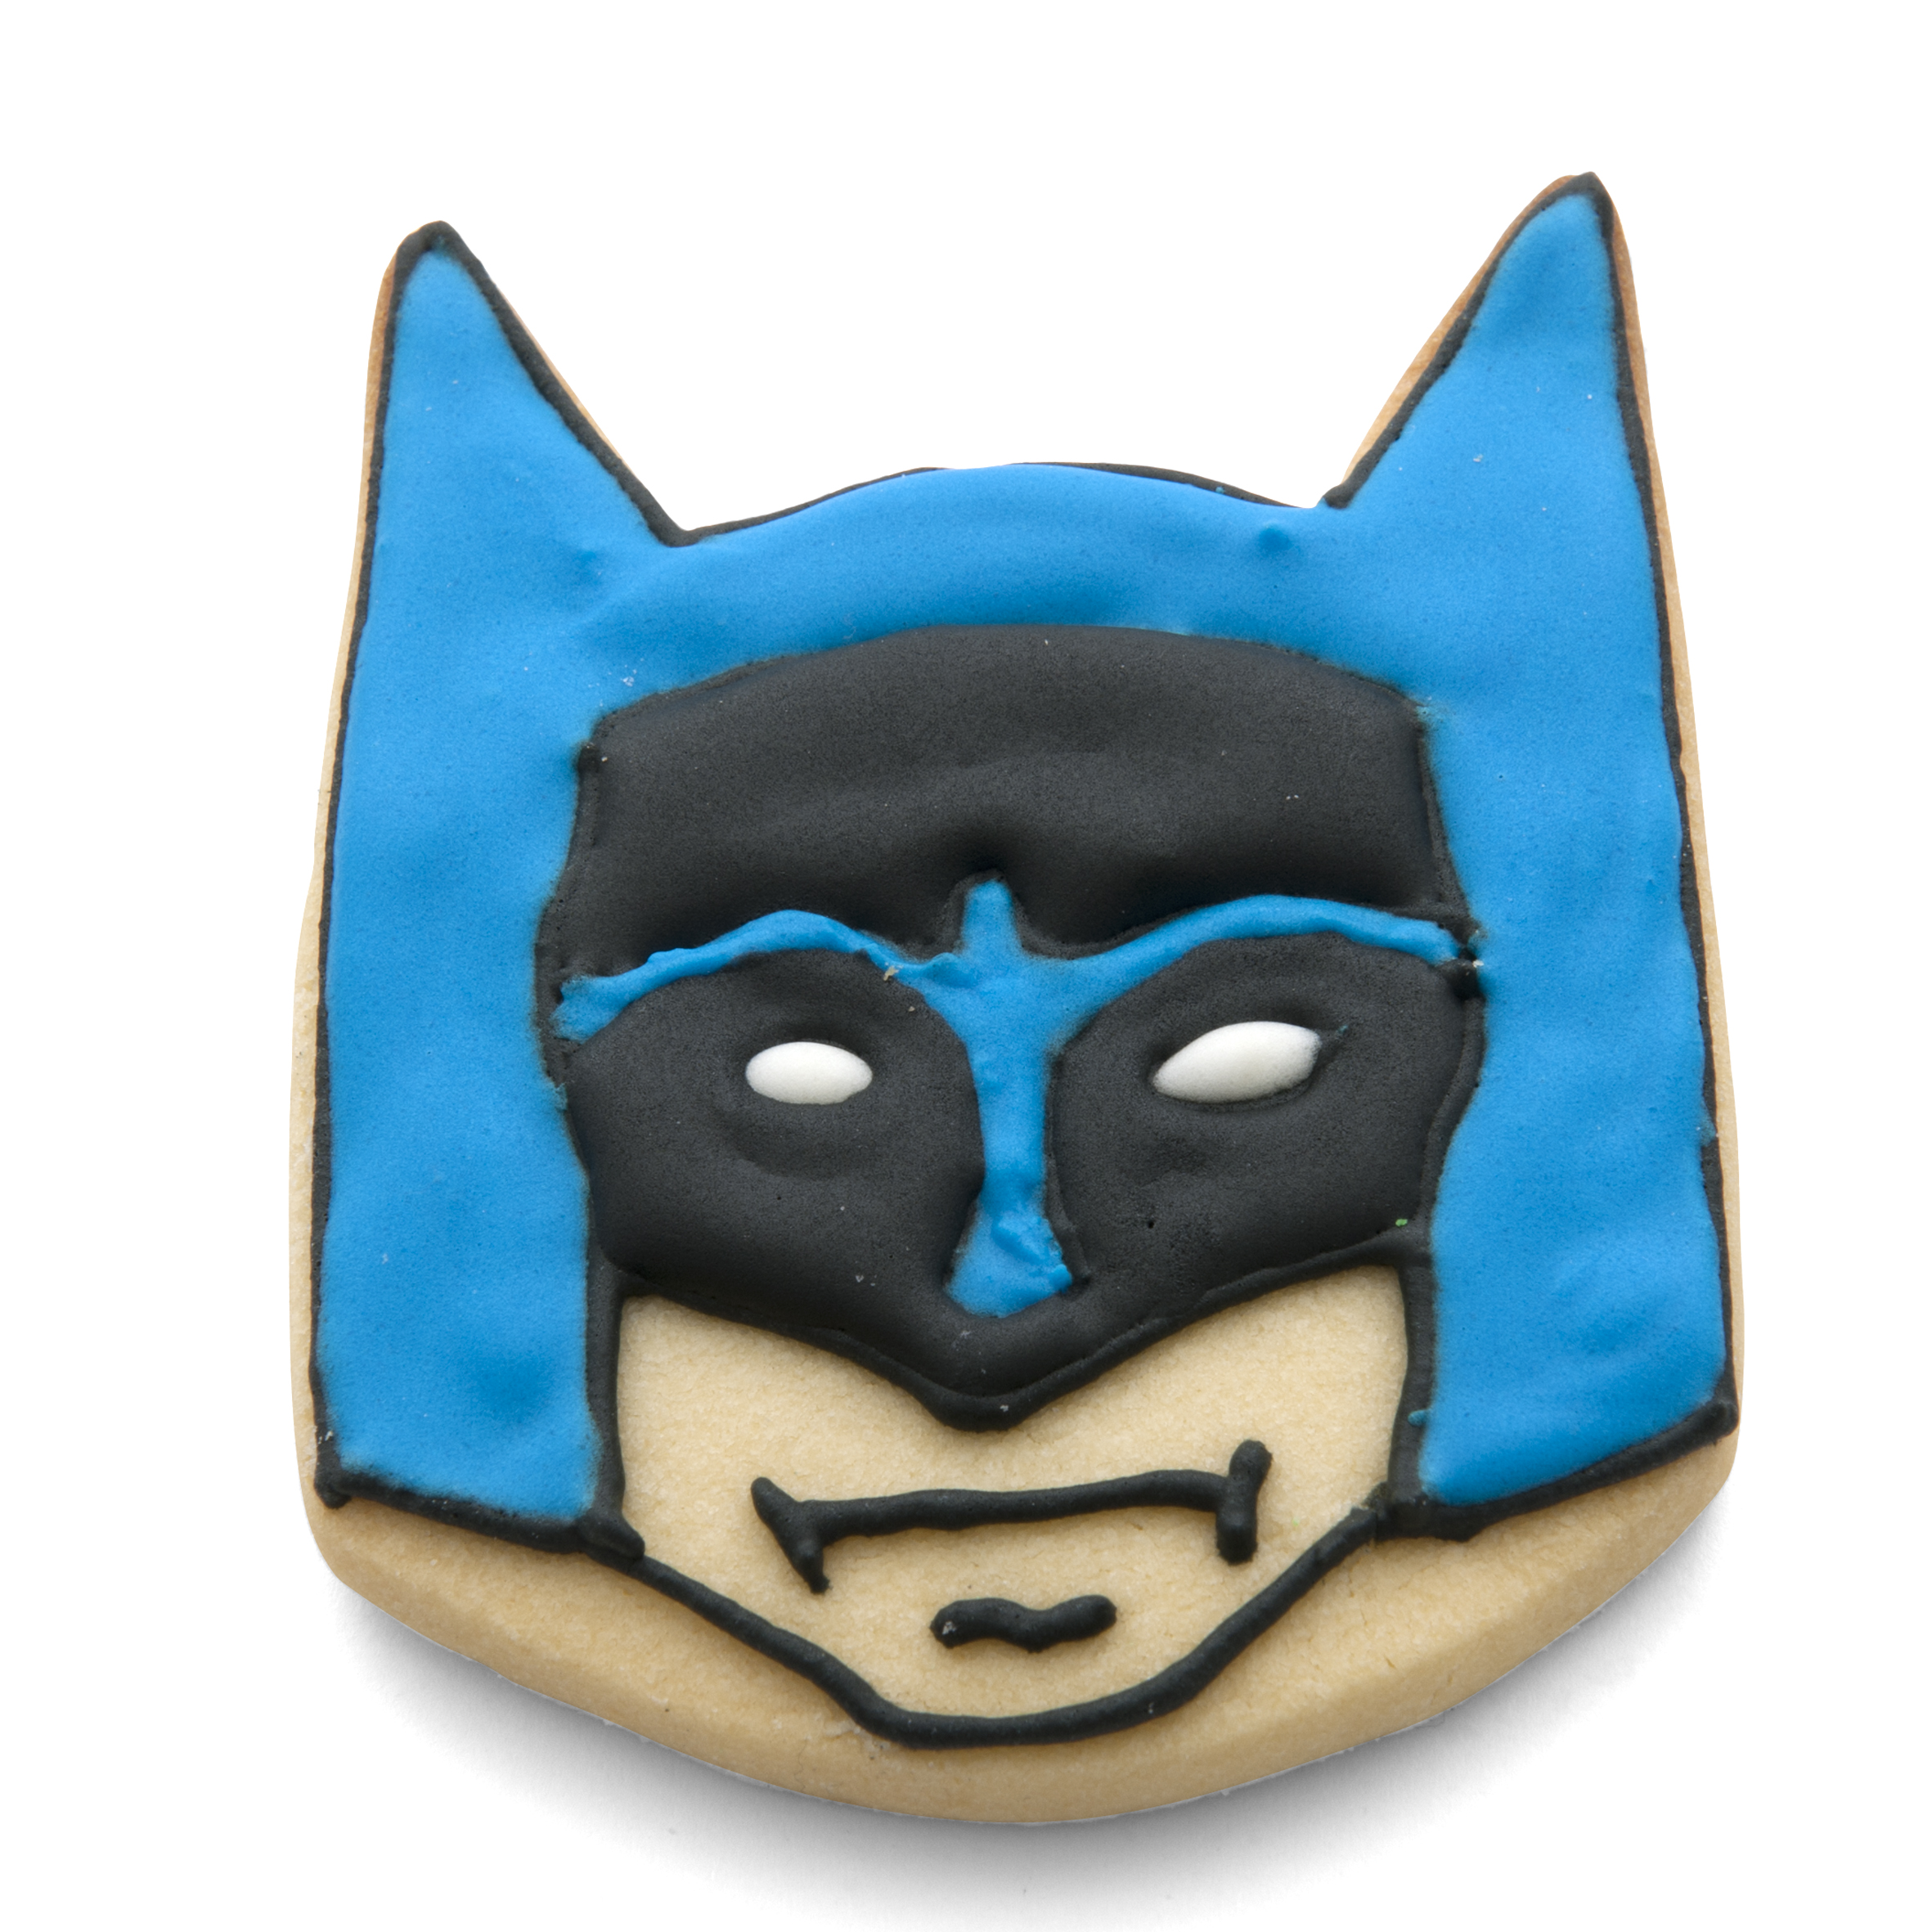 Bat Face Cookie Cutter Handmade Cuttercraft